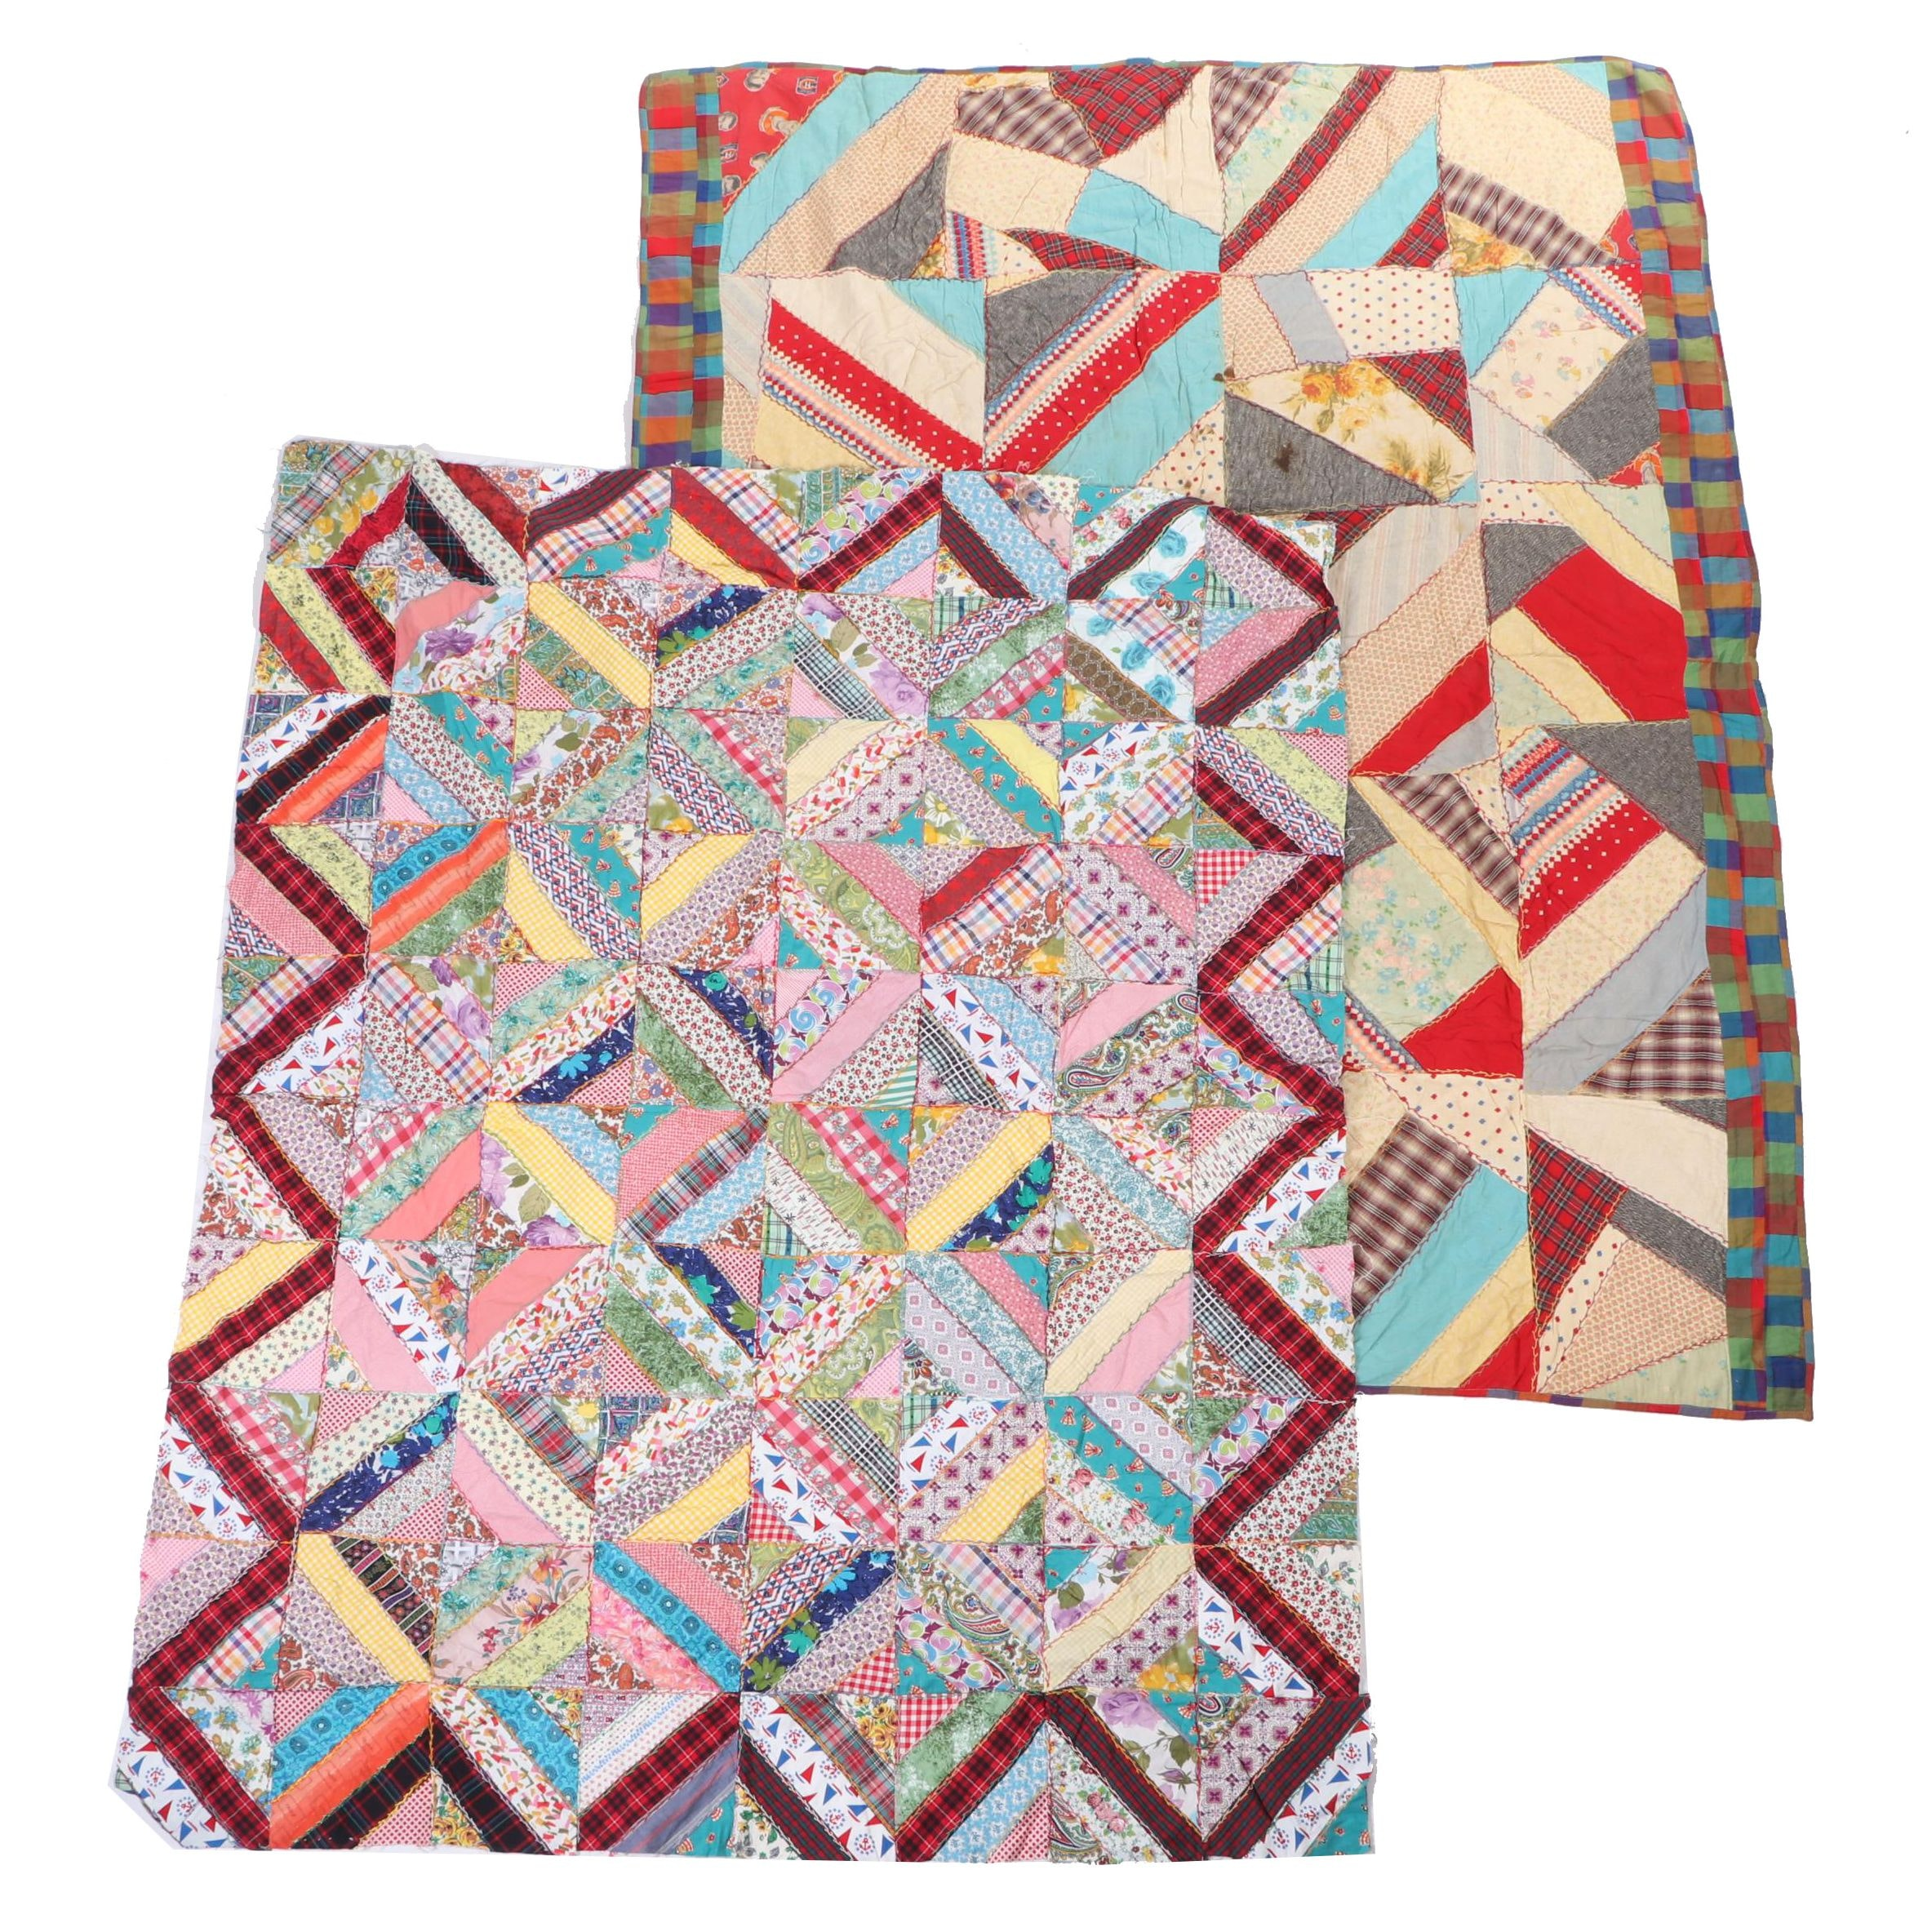 Handmade Patchwork Quilts with Canadians Hockey Players, Early/Mid 20th Century